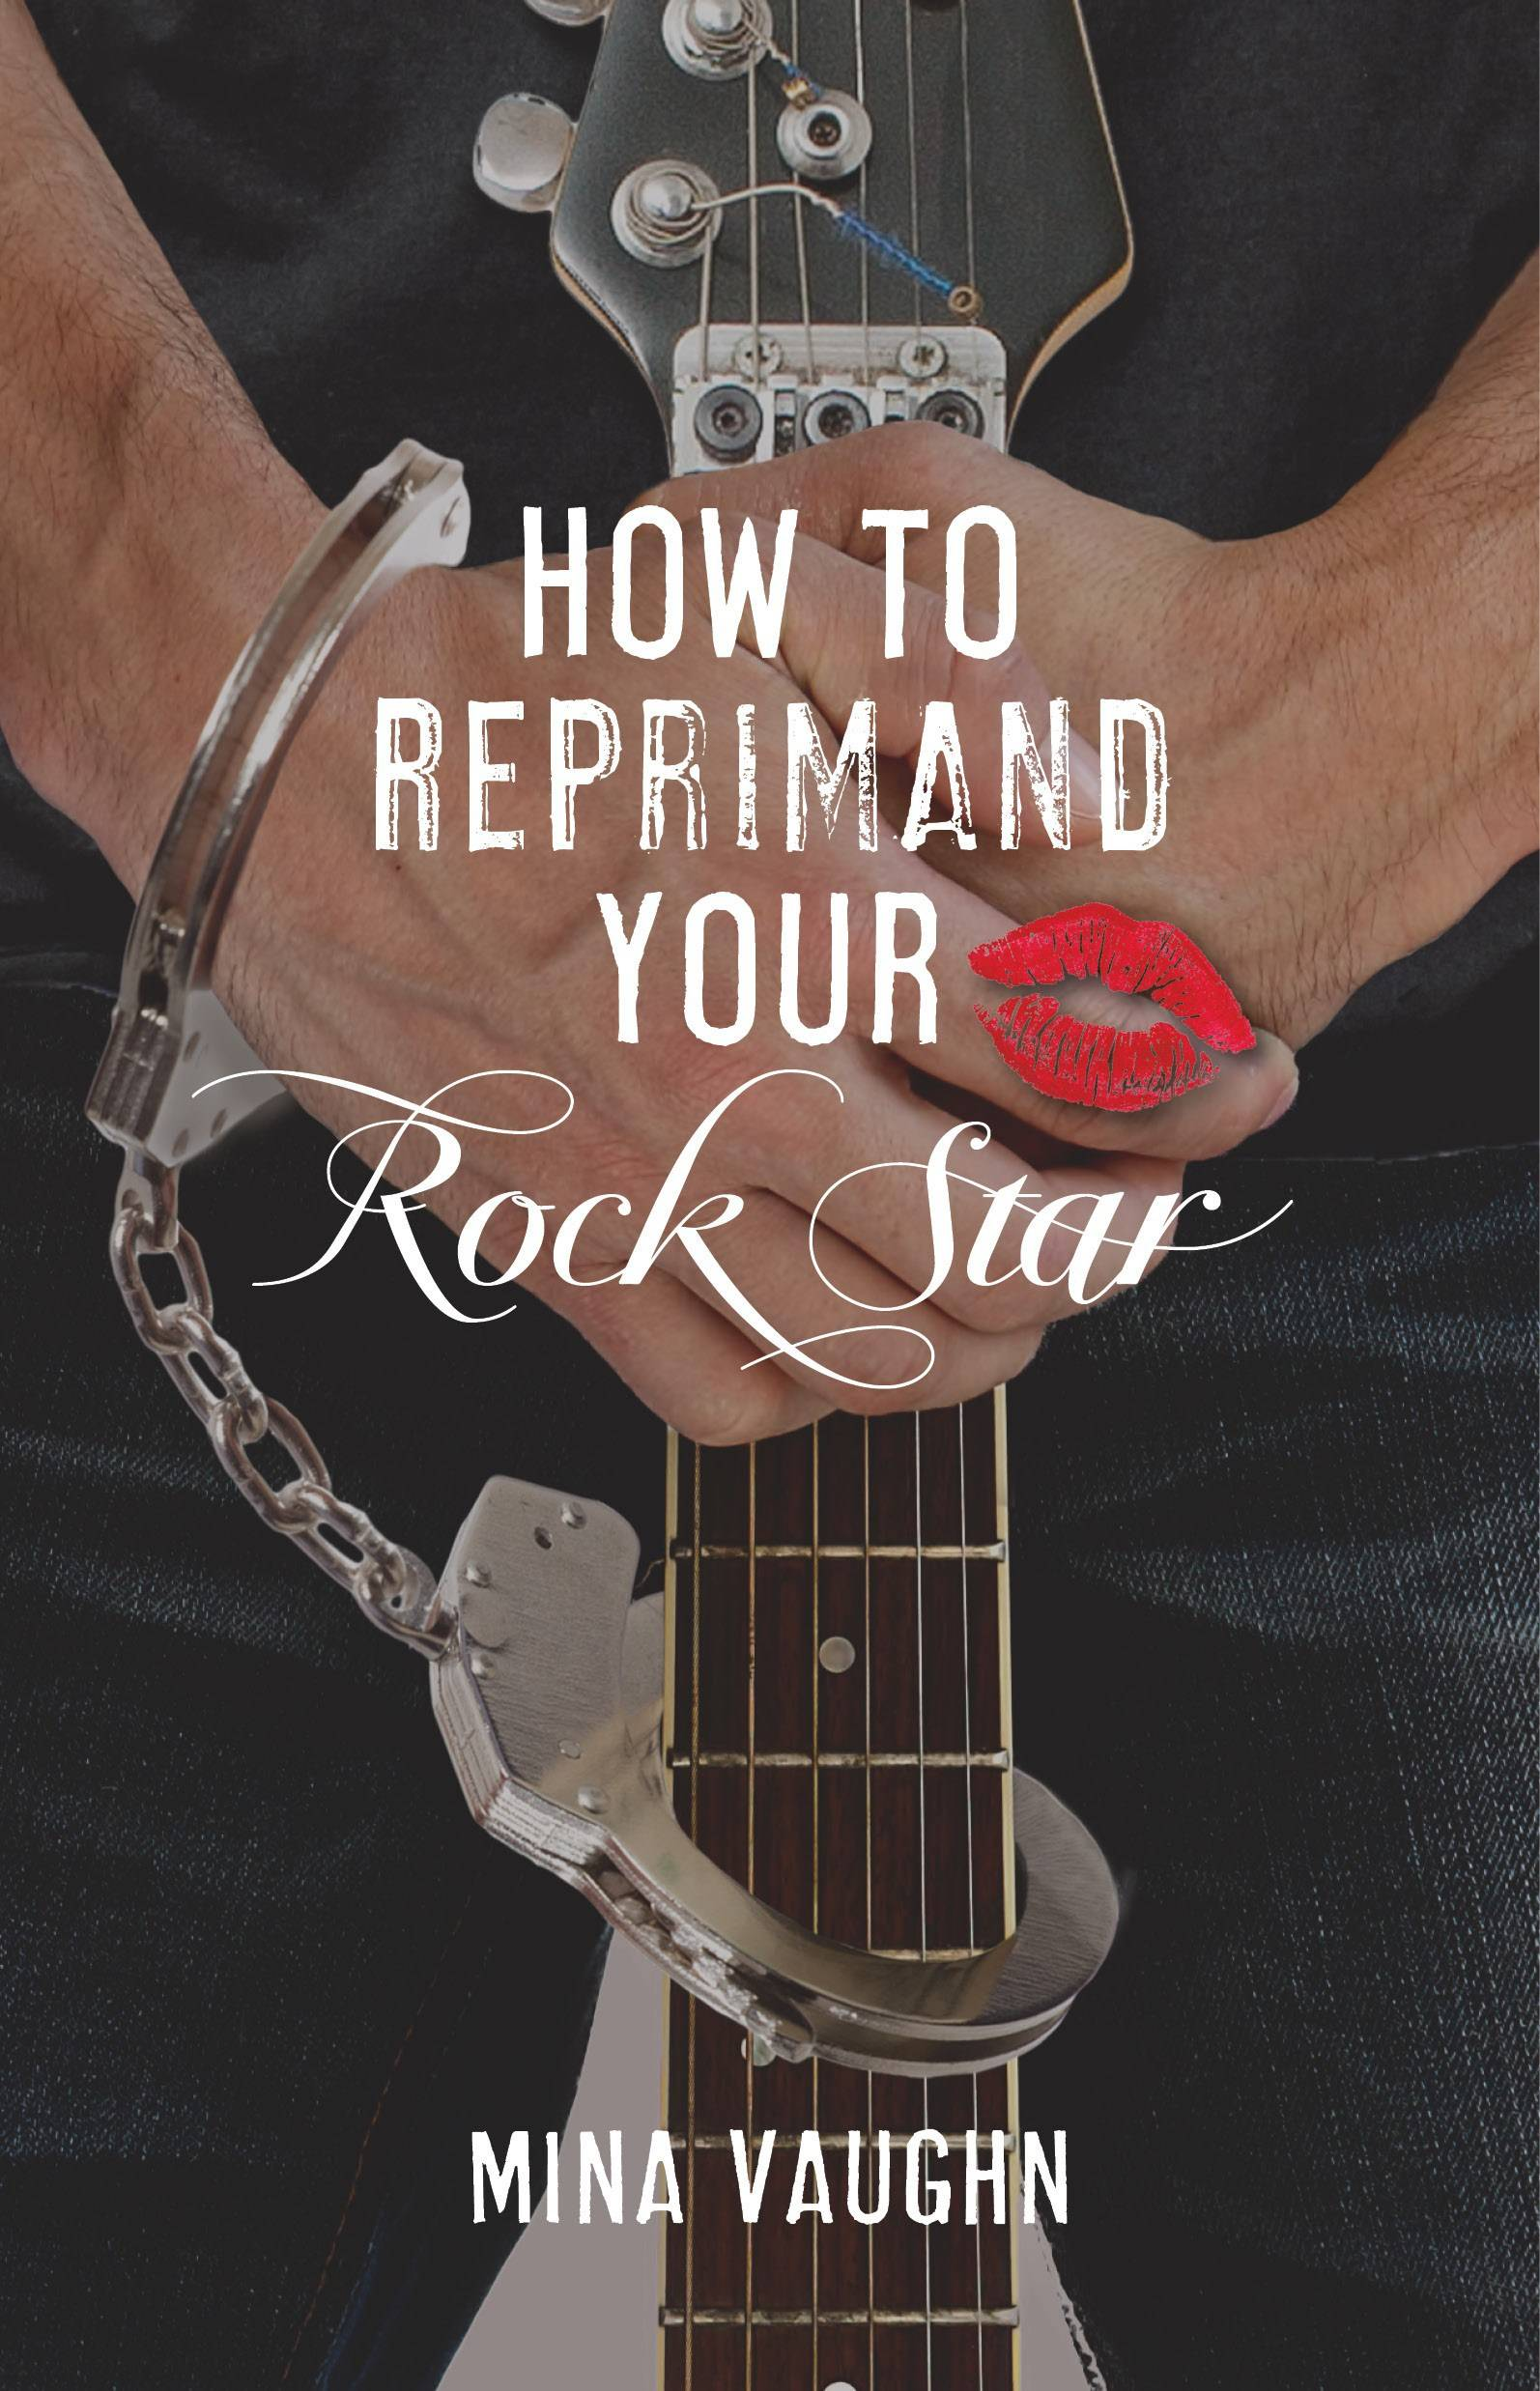 How-to-Reprimand-Your-Rock-Star